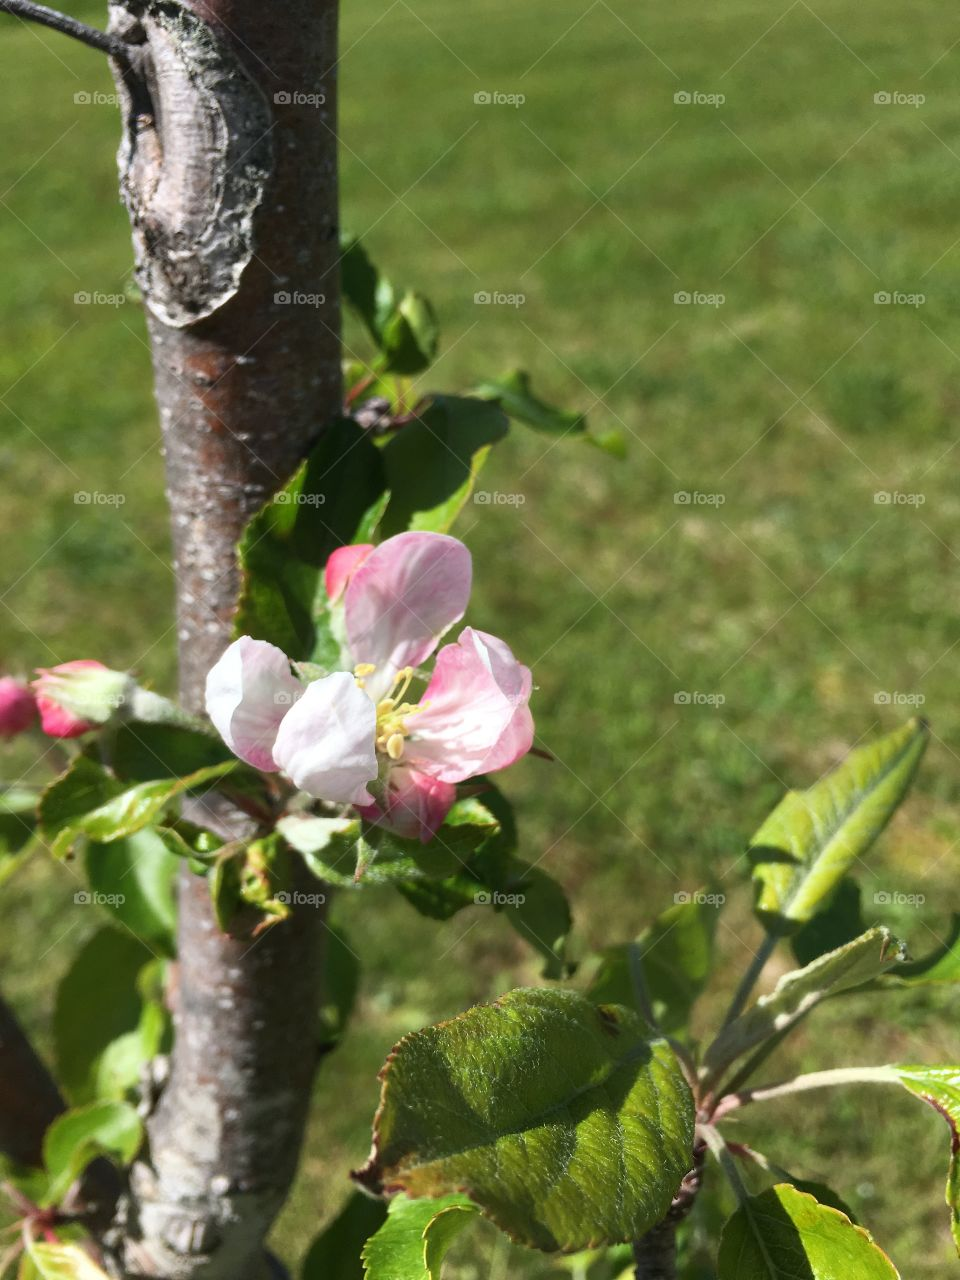 Apple Blossom in bloom. Pink and white flowers on Apple tree.